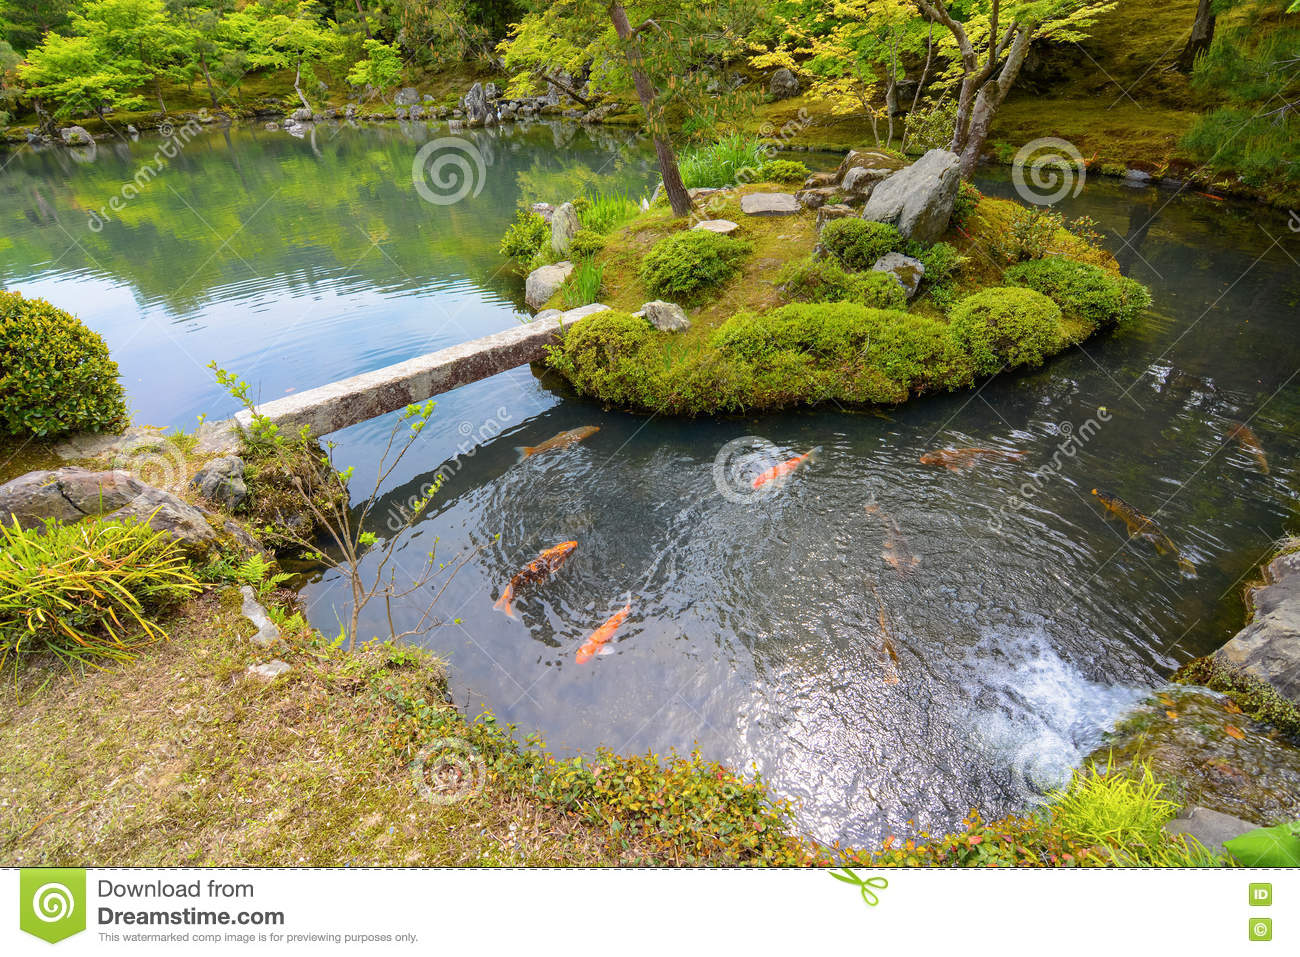 Traditional japanese pond garden with colorful orange carp for Japanese koi pond garden